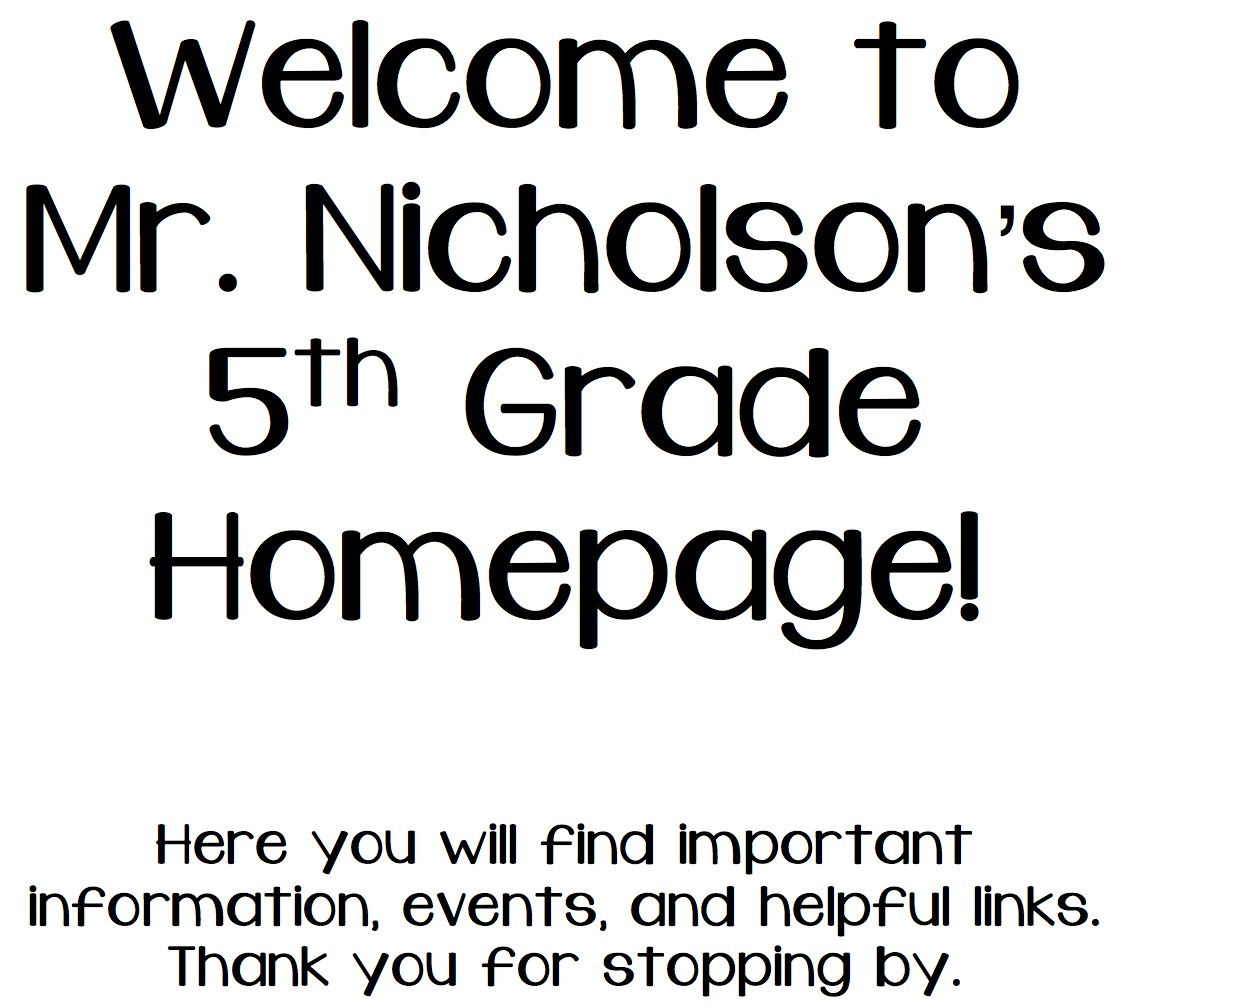 Welcome to Mr. Nicholson's 5th Grade Homepage!  Here you will find important information, events, and helpful links.  Thank you for stopping by.